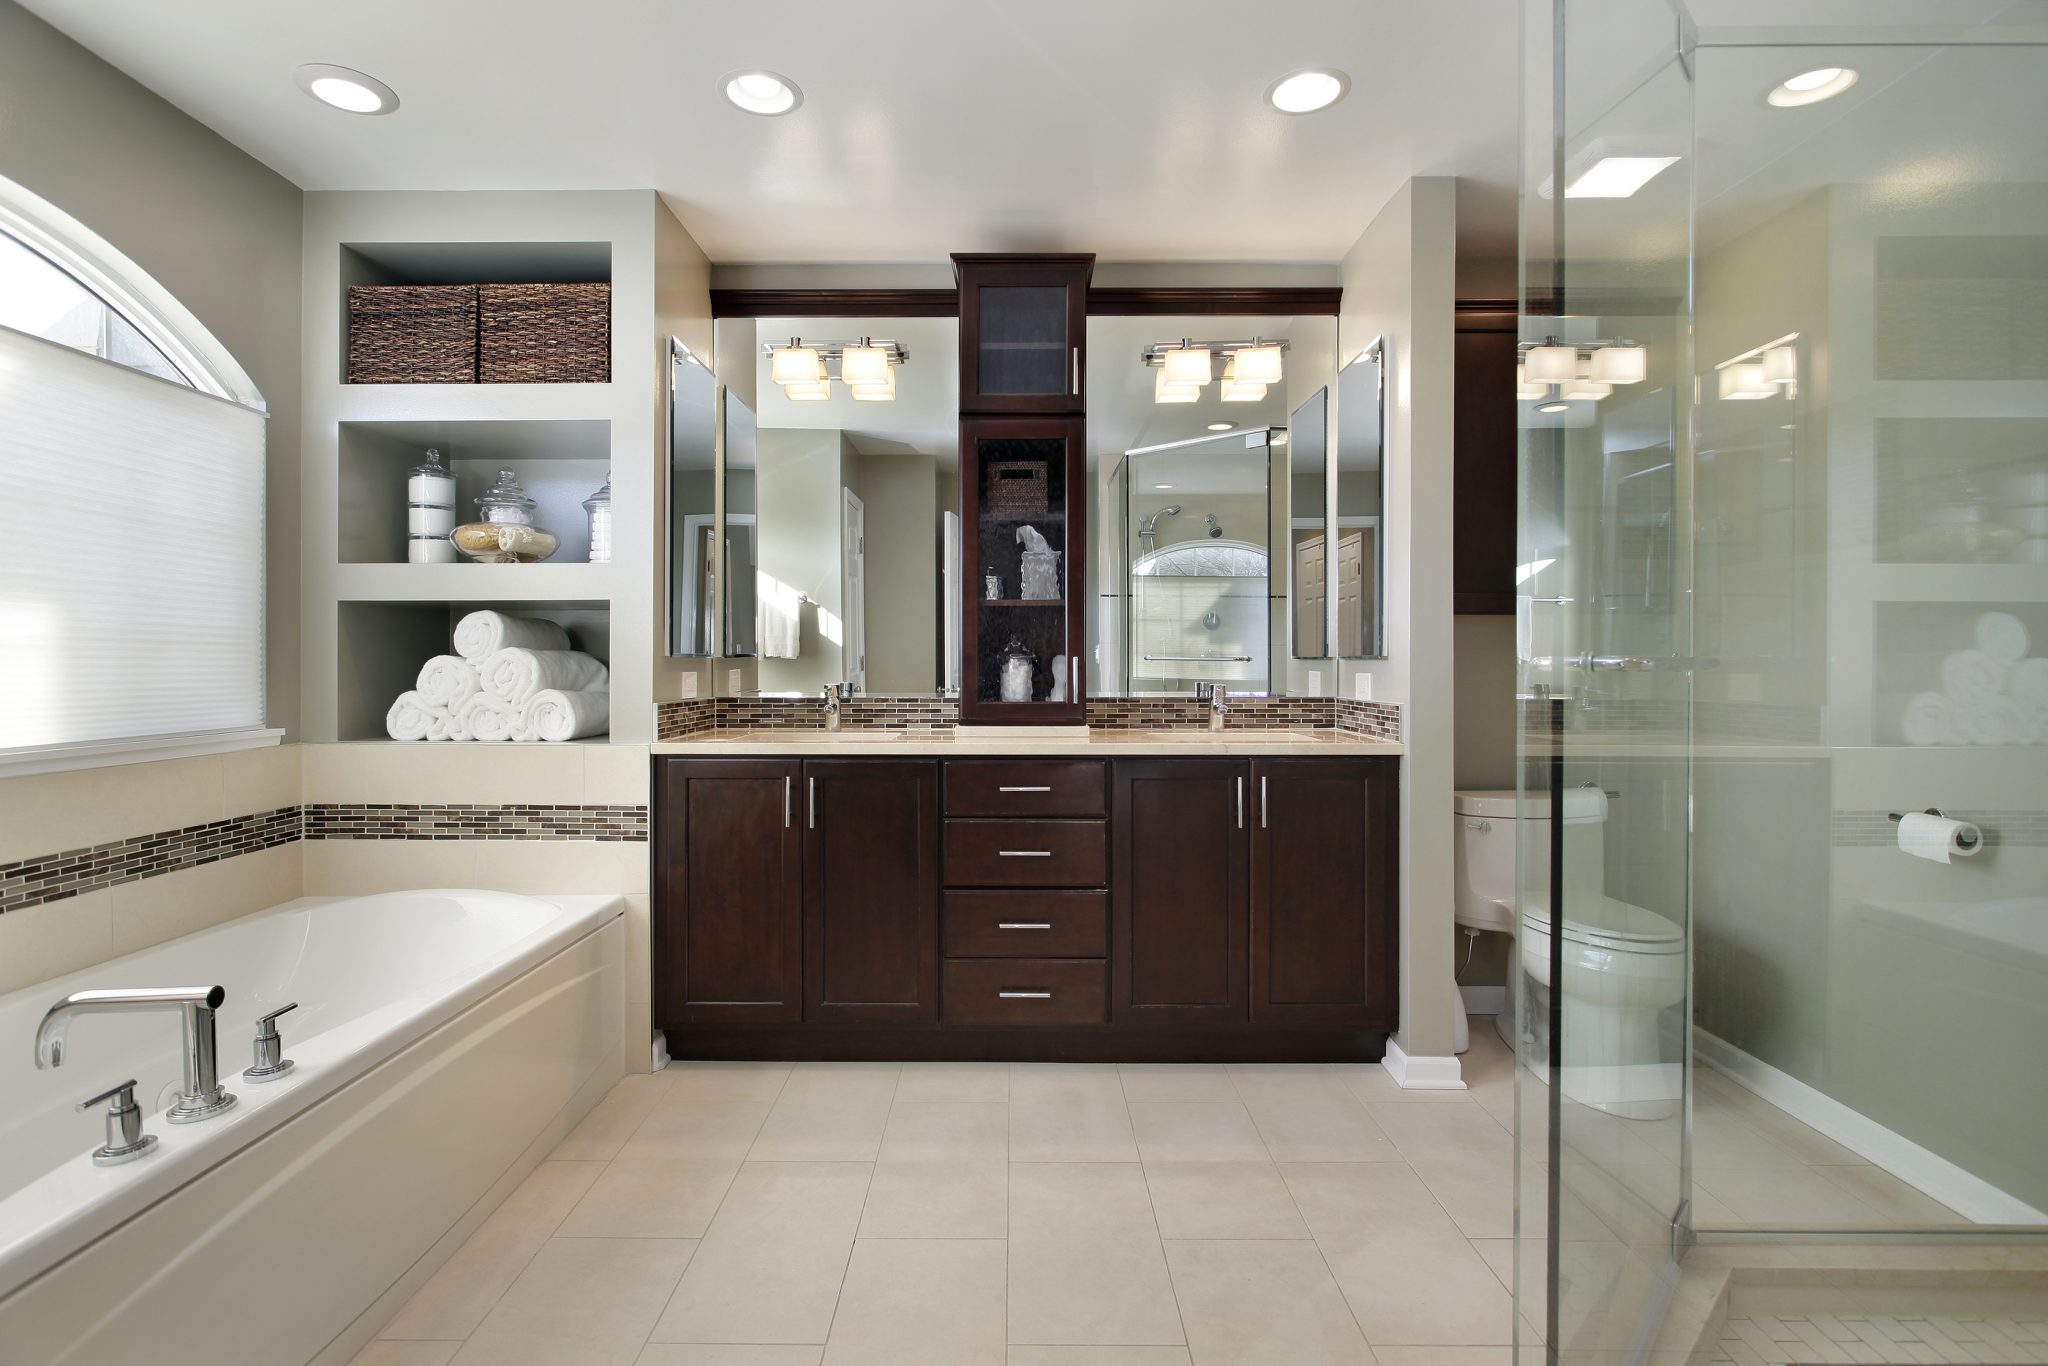 Bathroom Remodeling - www.elysianhomeimprovement.com